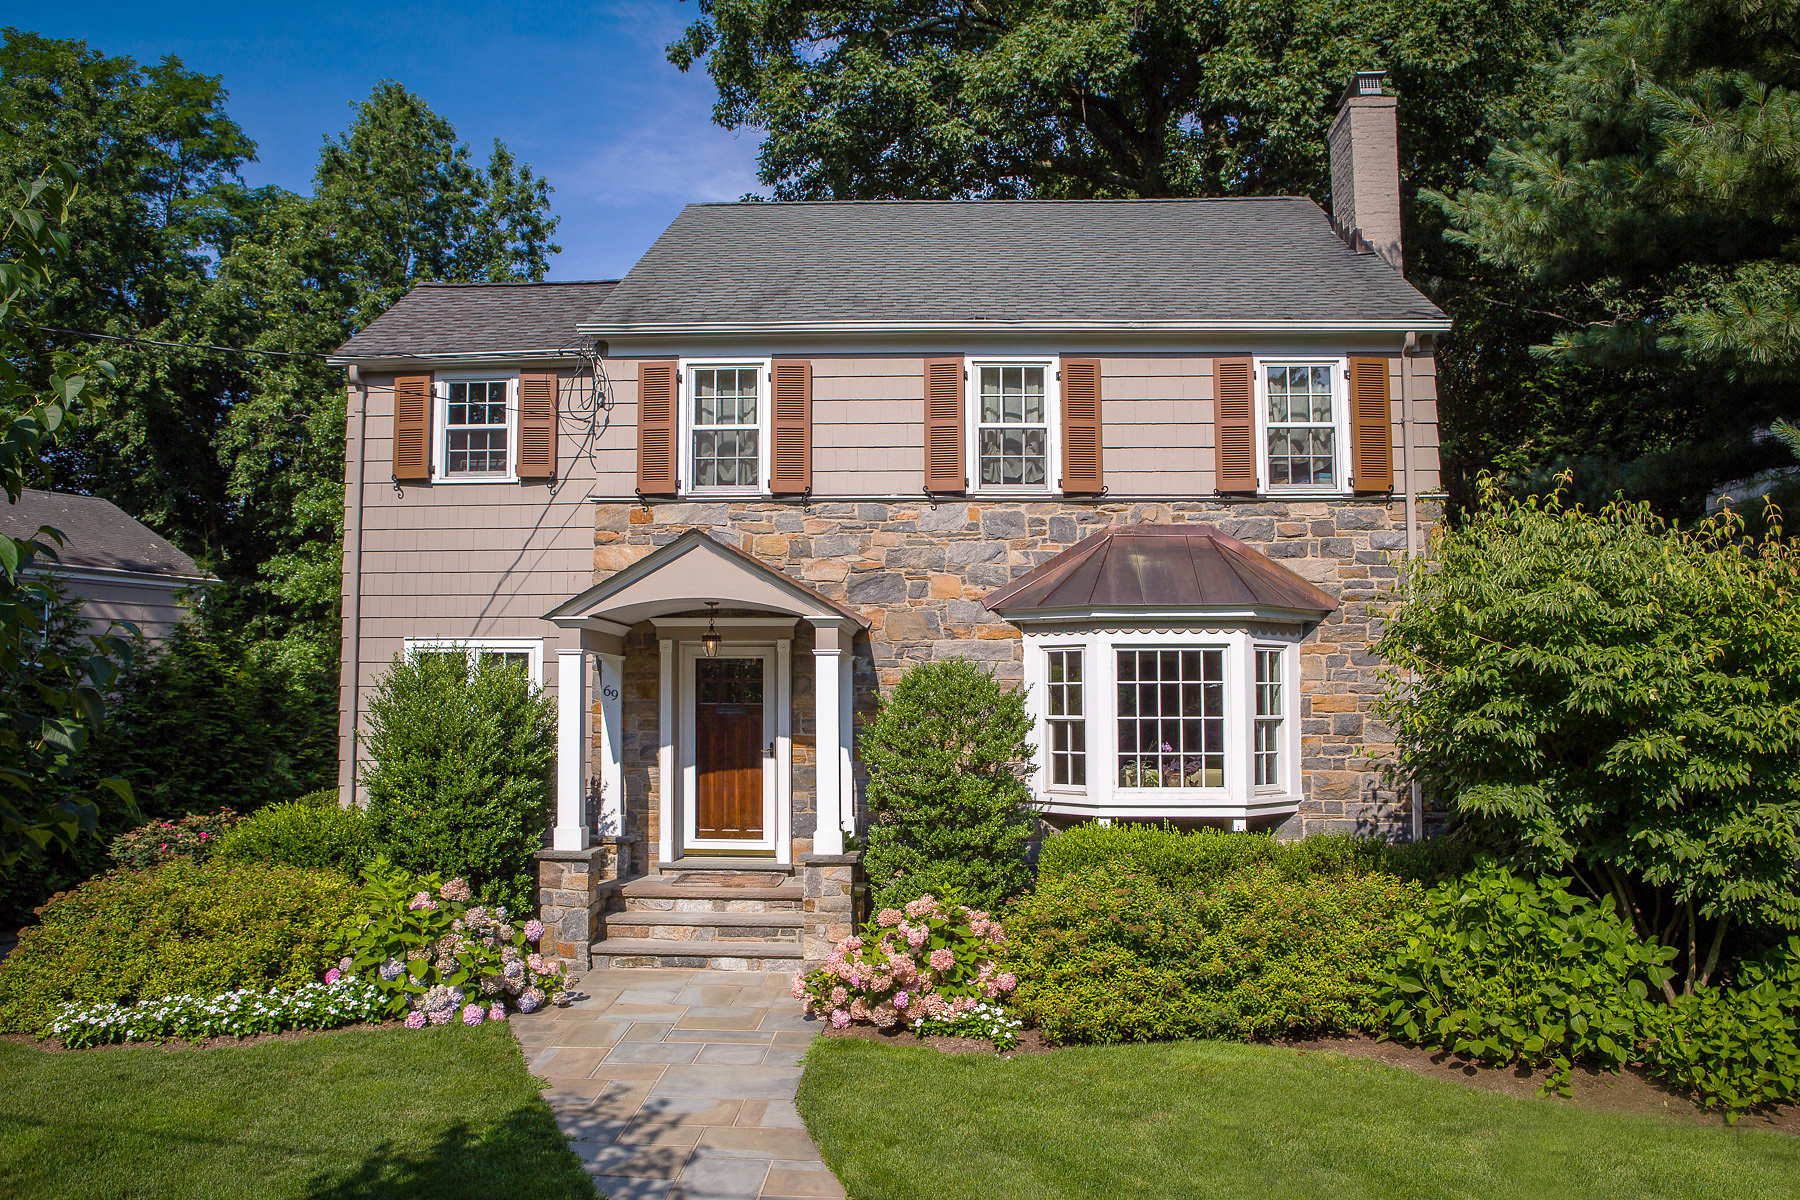 Single Family Home for Sale at Charming stone colonial at the end of the most desirable quiet cul-de-sac. 69 Stony Lane, Short Hills, New Jersey, 07078 United States